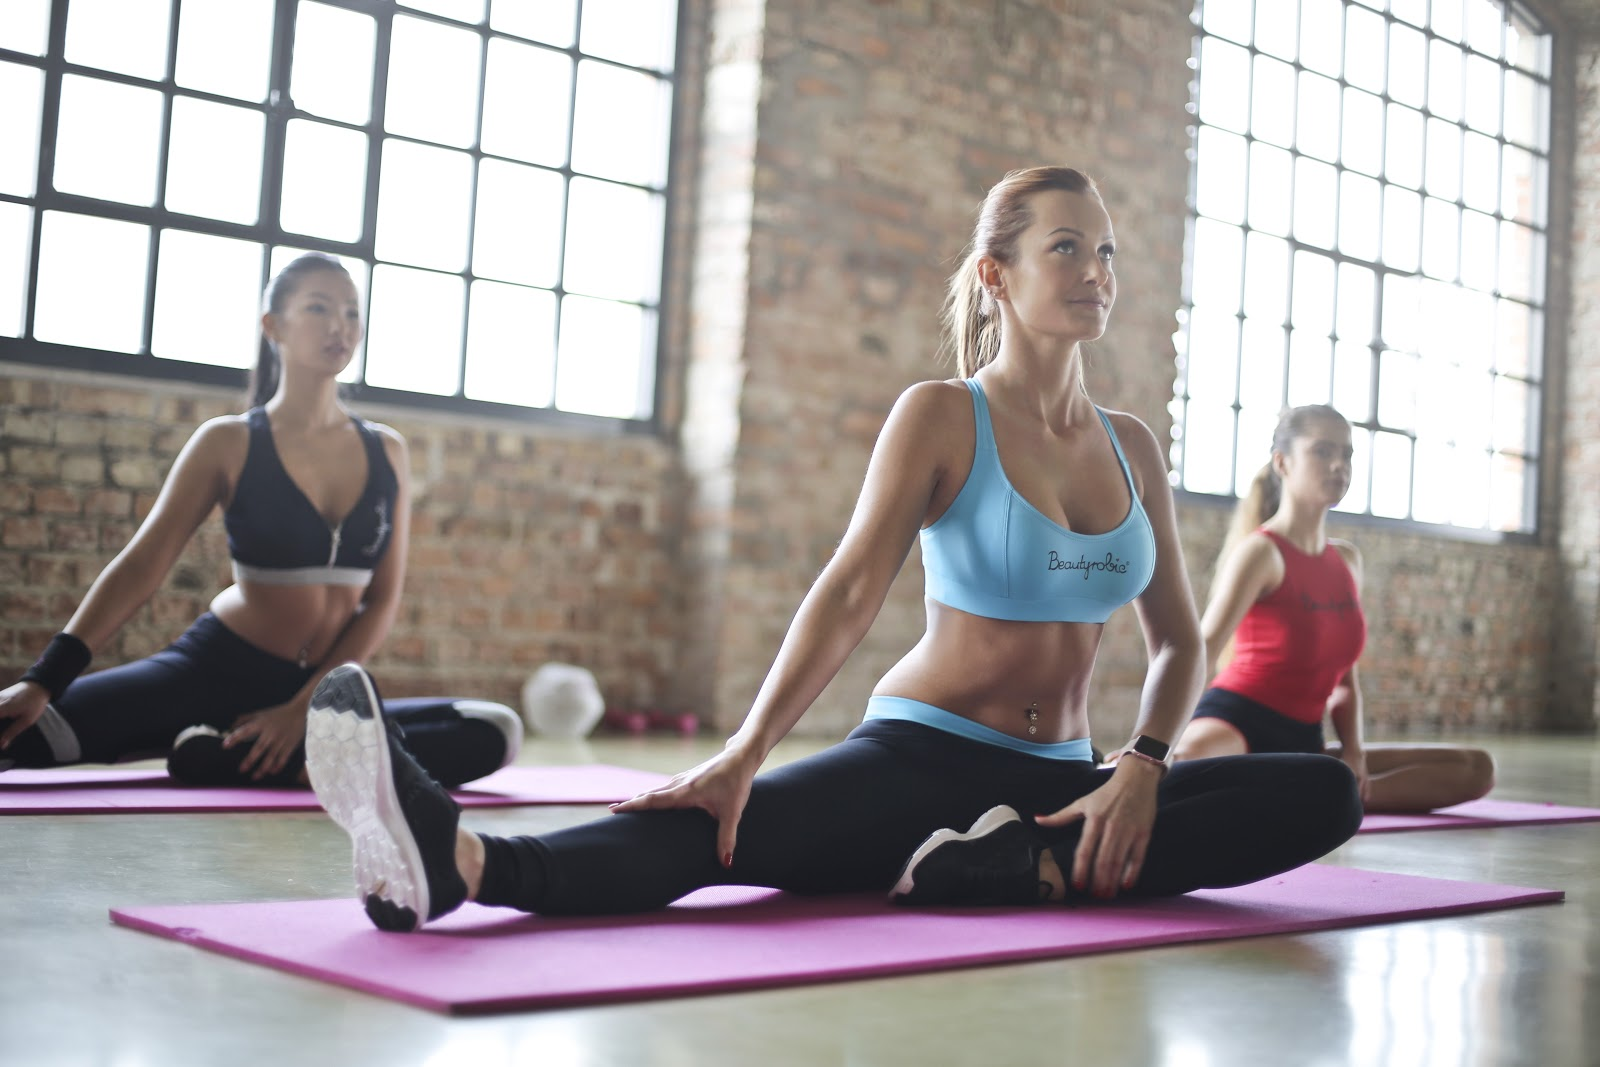 3 fit women stretch on yoga mats in a fitness class for adults